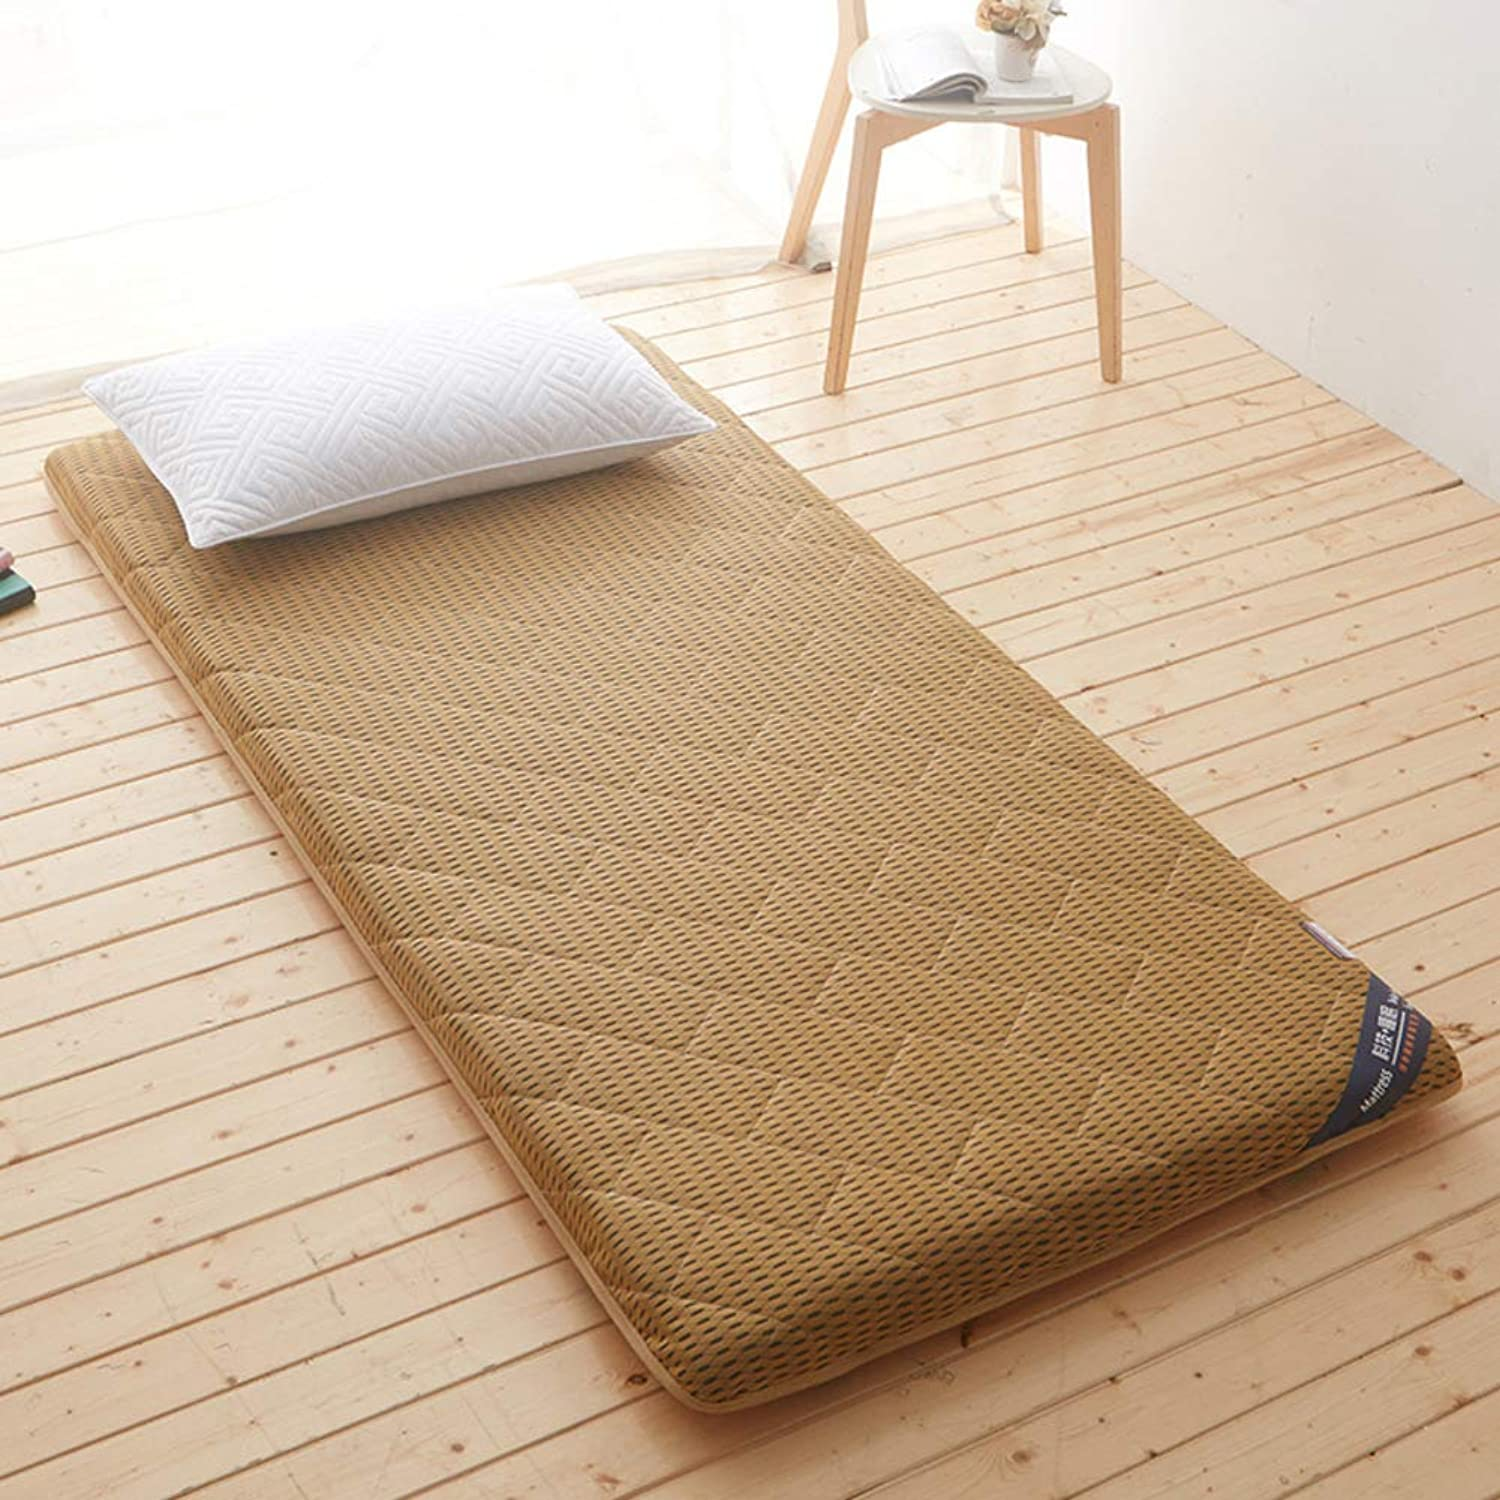 Premium Tatami Floor mat Mattress,Folding Japanese futon Predector Mattress pad Topper Student Dormitory mattresses-Light tan 60x120cm(24x47inch)